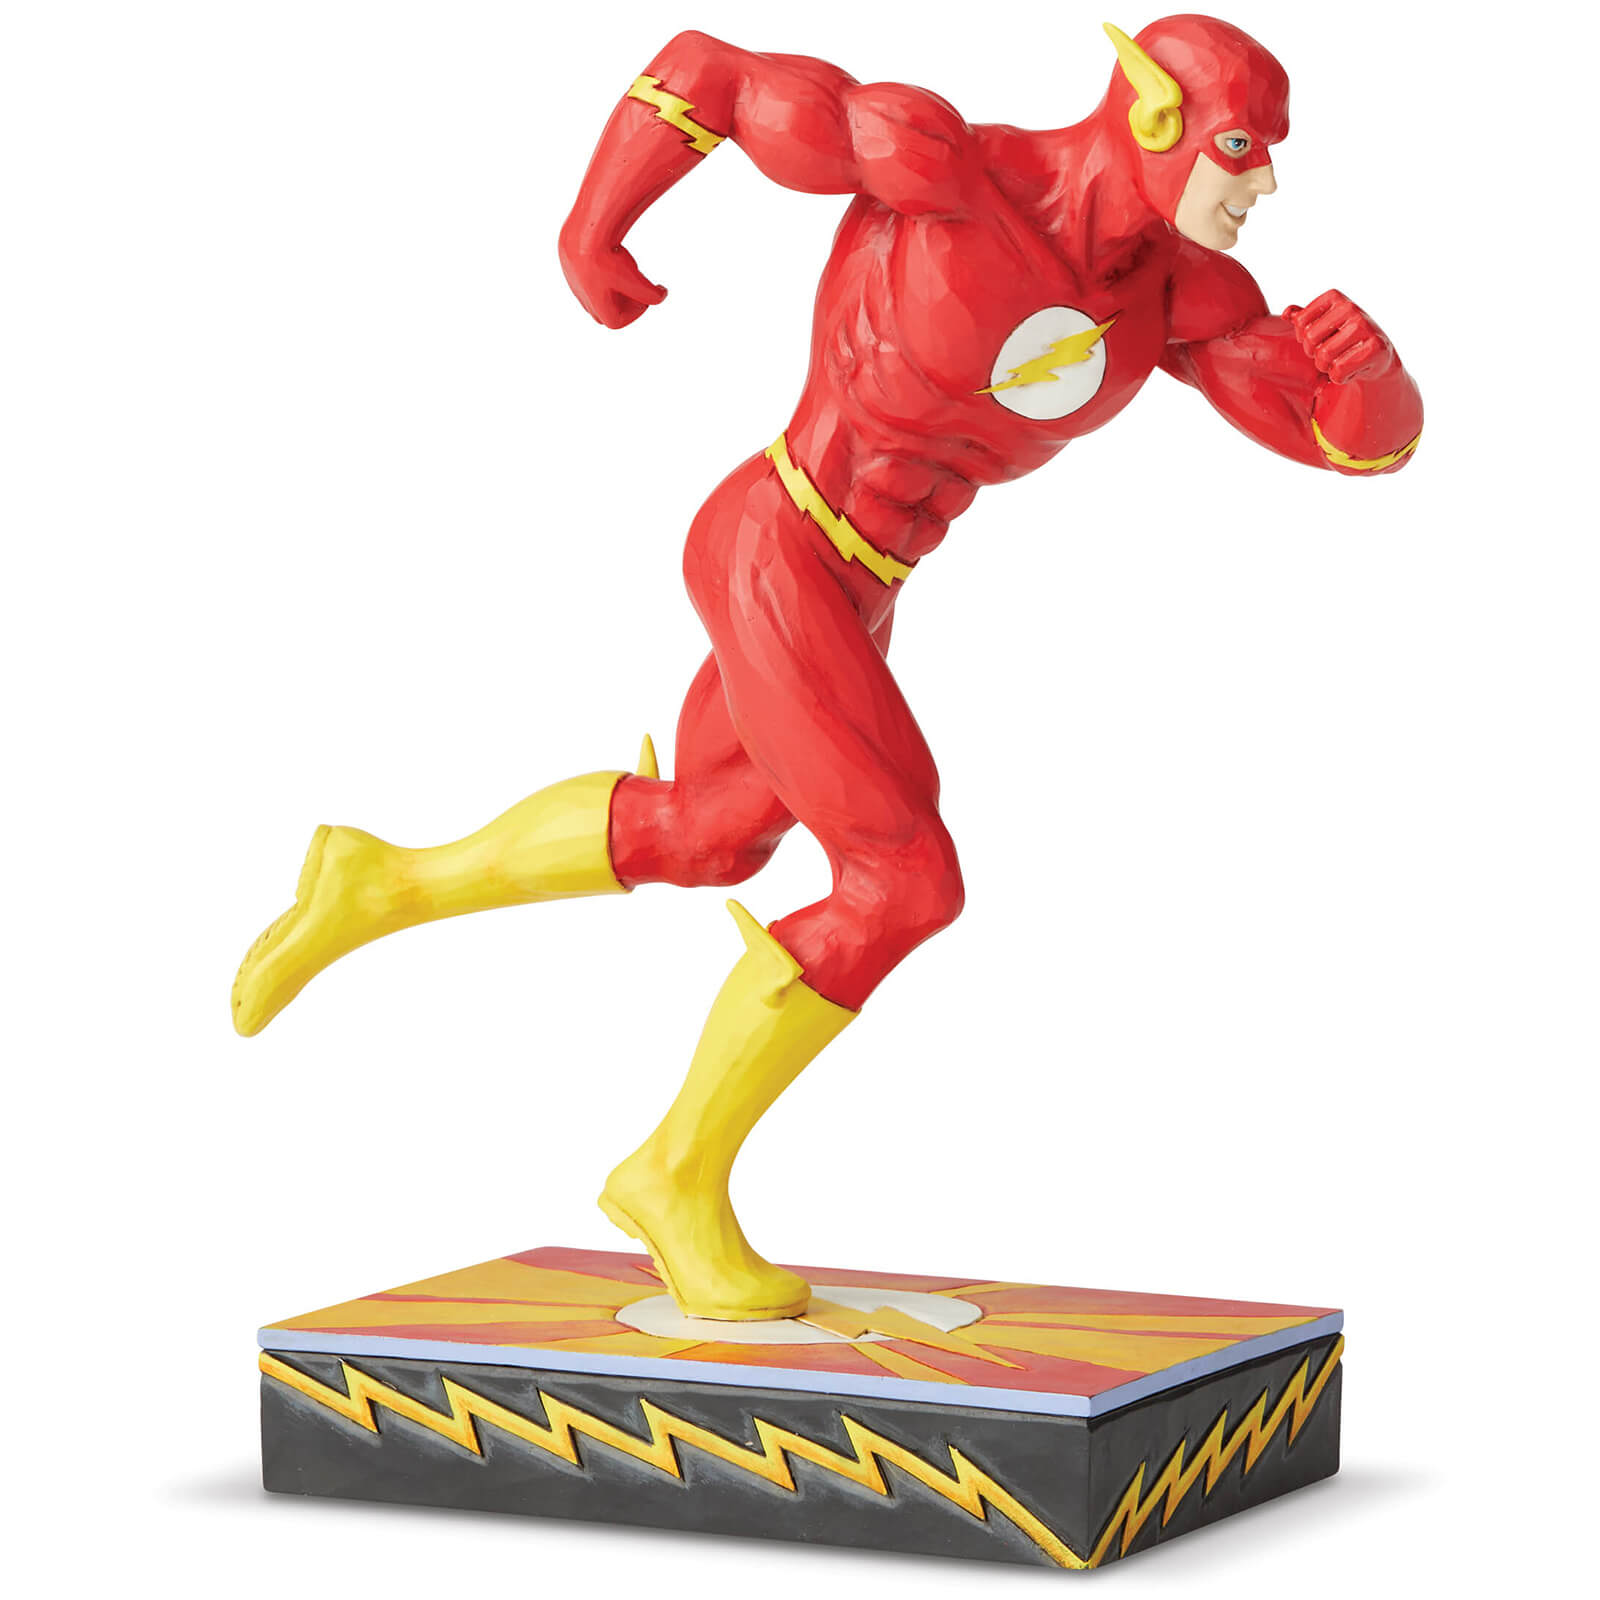 Image of DC Comics by Jim Shore Flash Silver Age Figurine 19.0cm